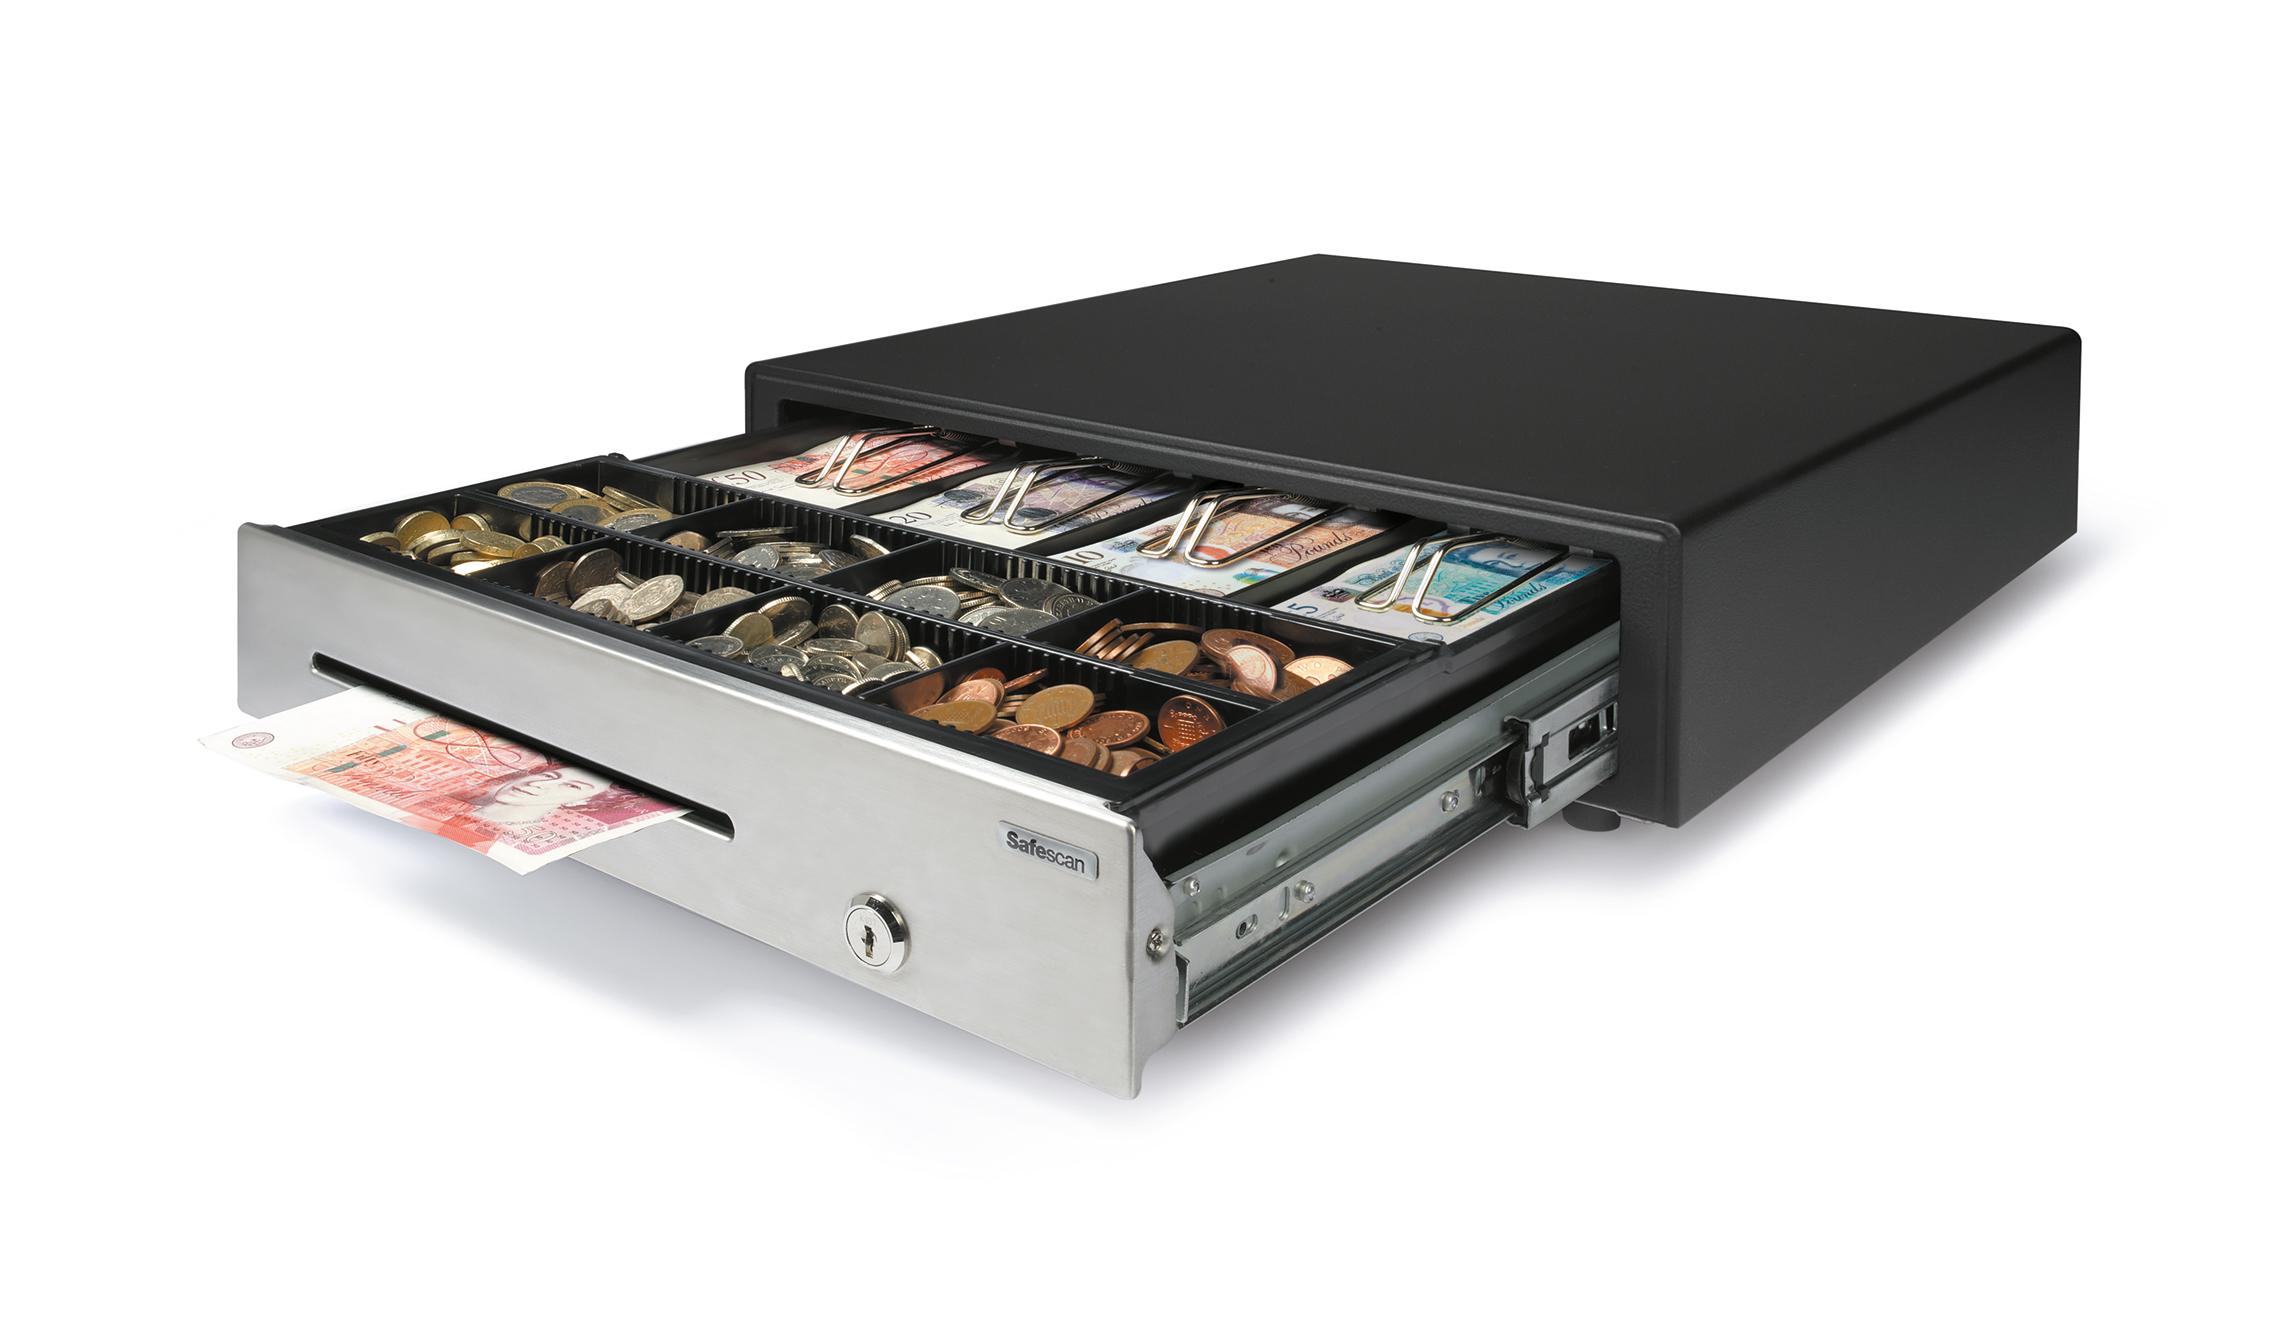 Safescan HD-4141 Cash Drawer